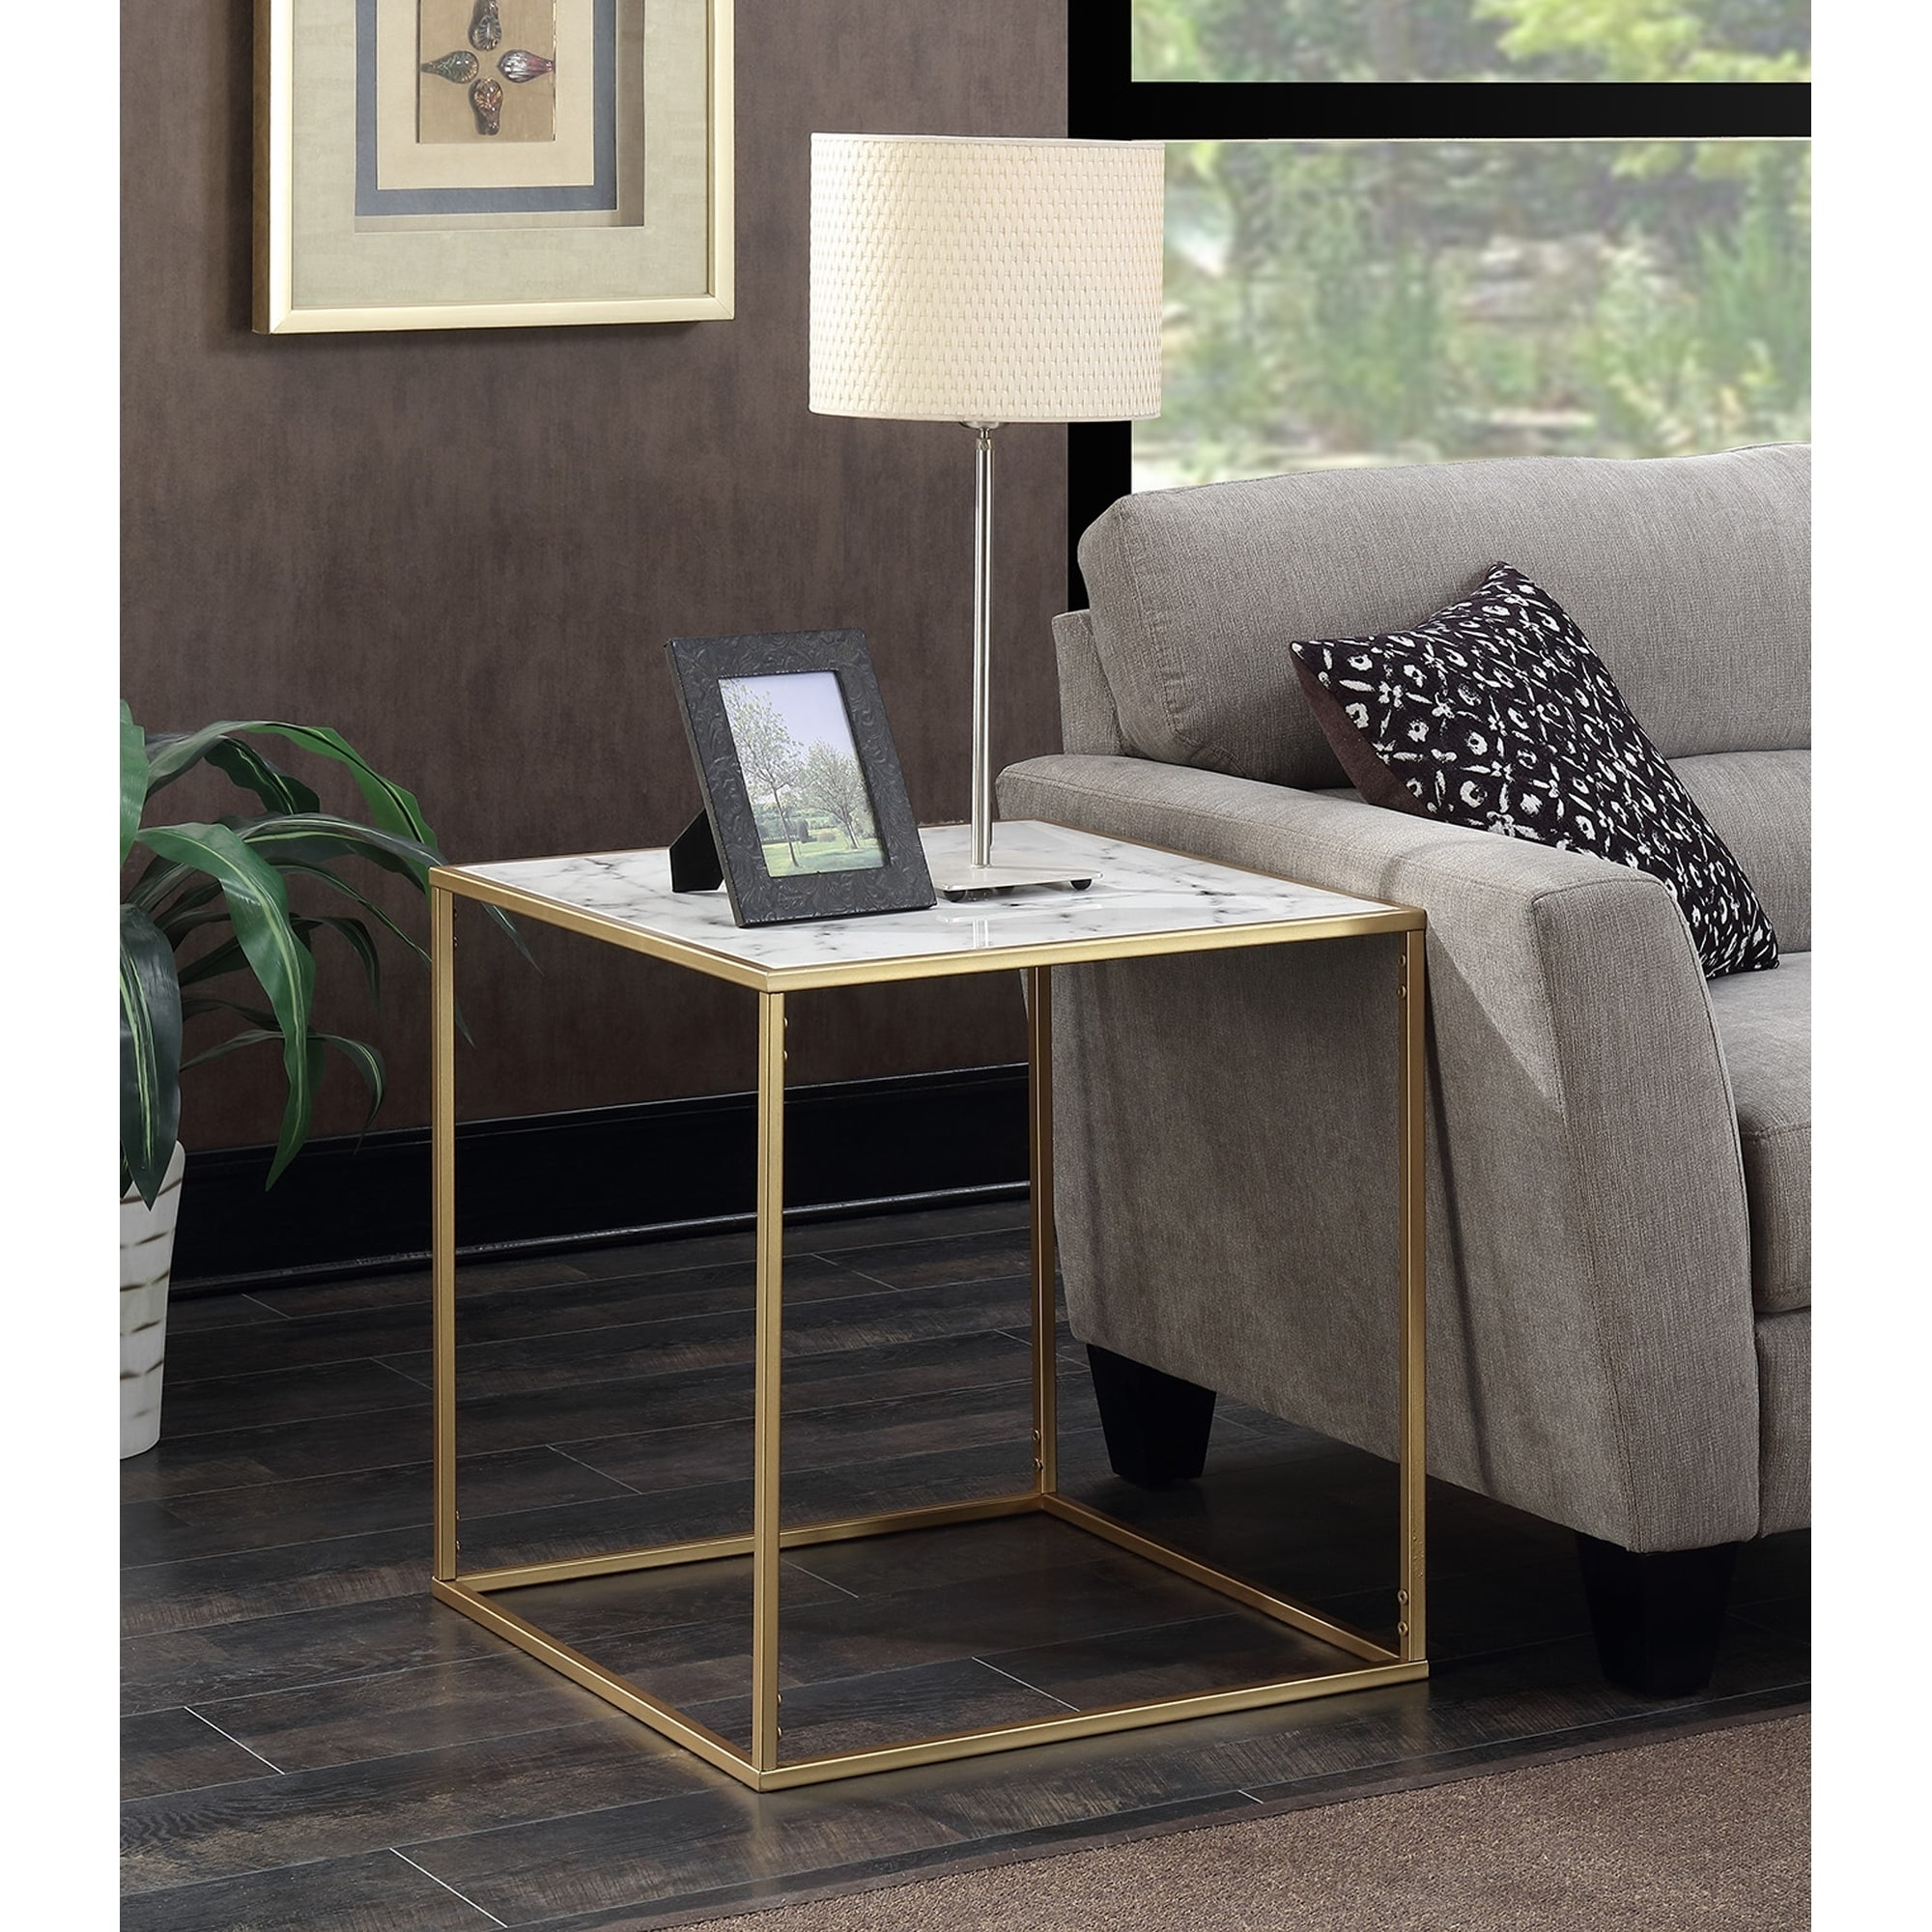 Shop silver orchid hasmik square faux marble end table on sale free shipping today overstock com 23122754